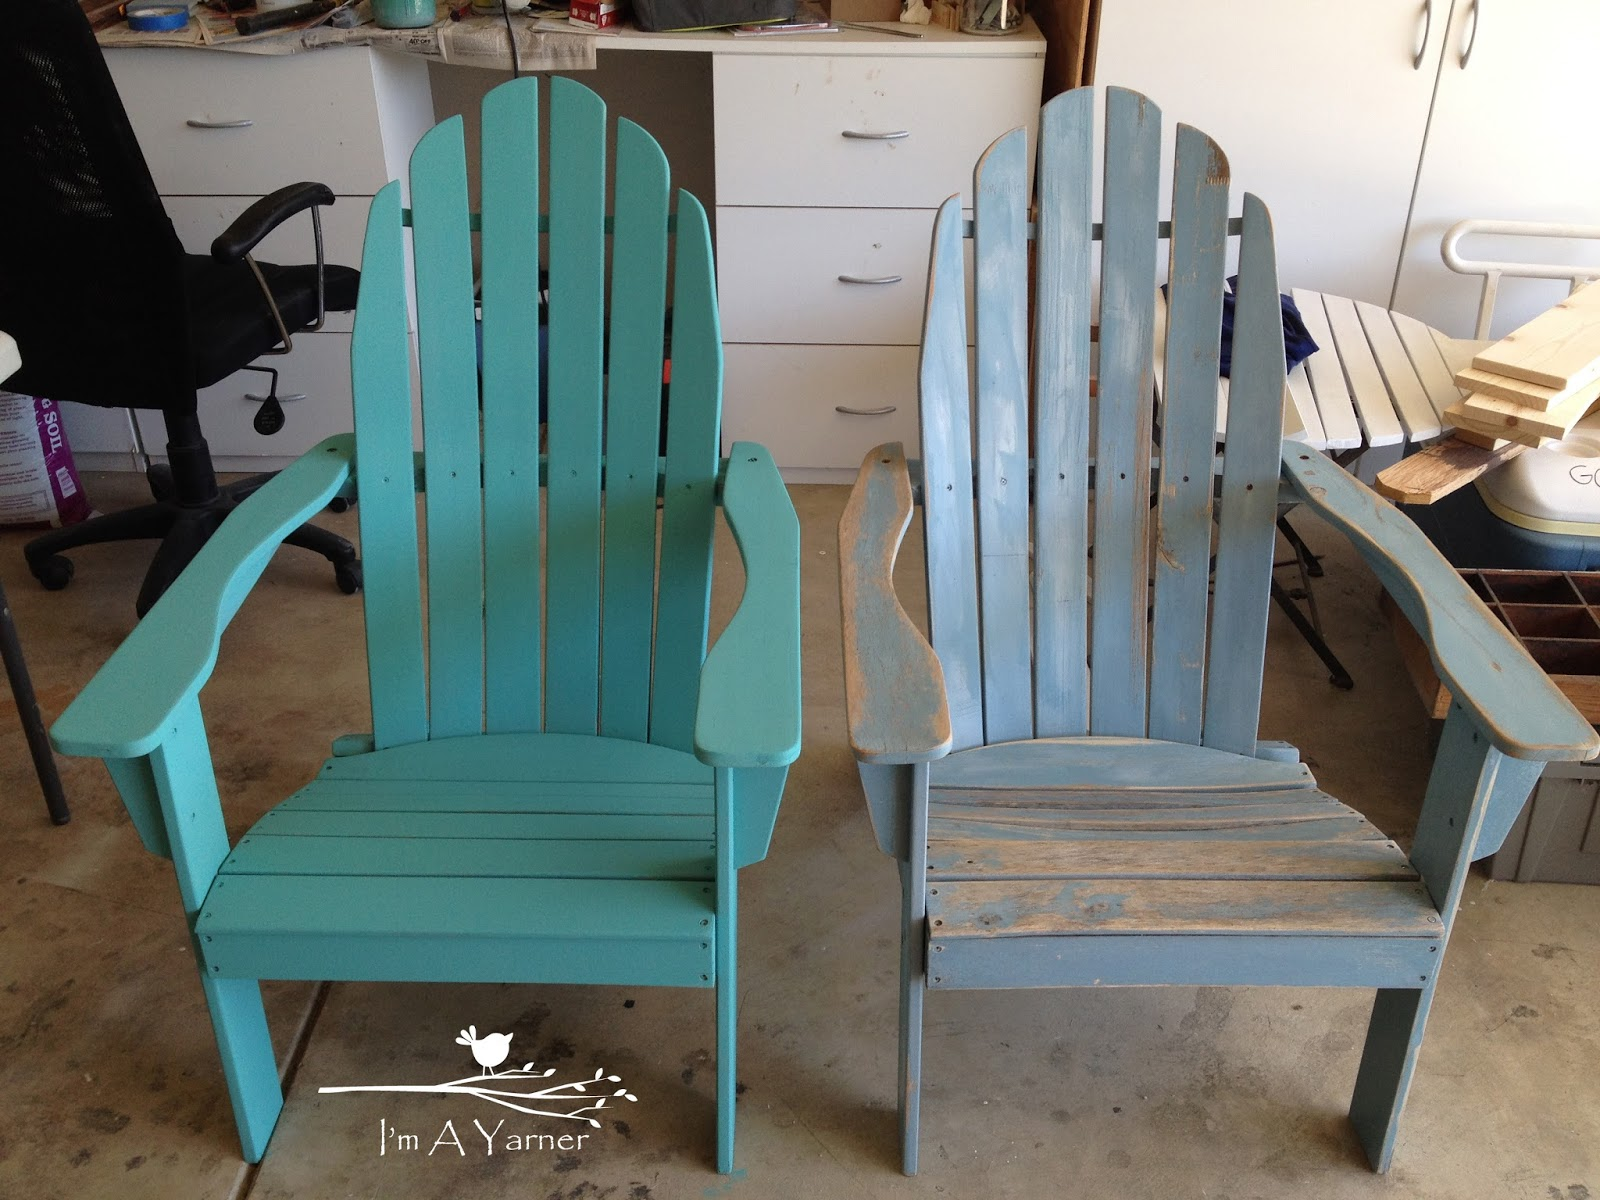 paint for adirondack chairs west elm dining i m a yarner updated what huge difference little can make don t know why but it still amazes me